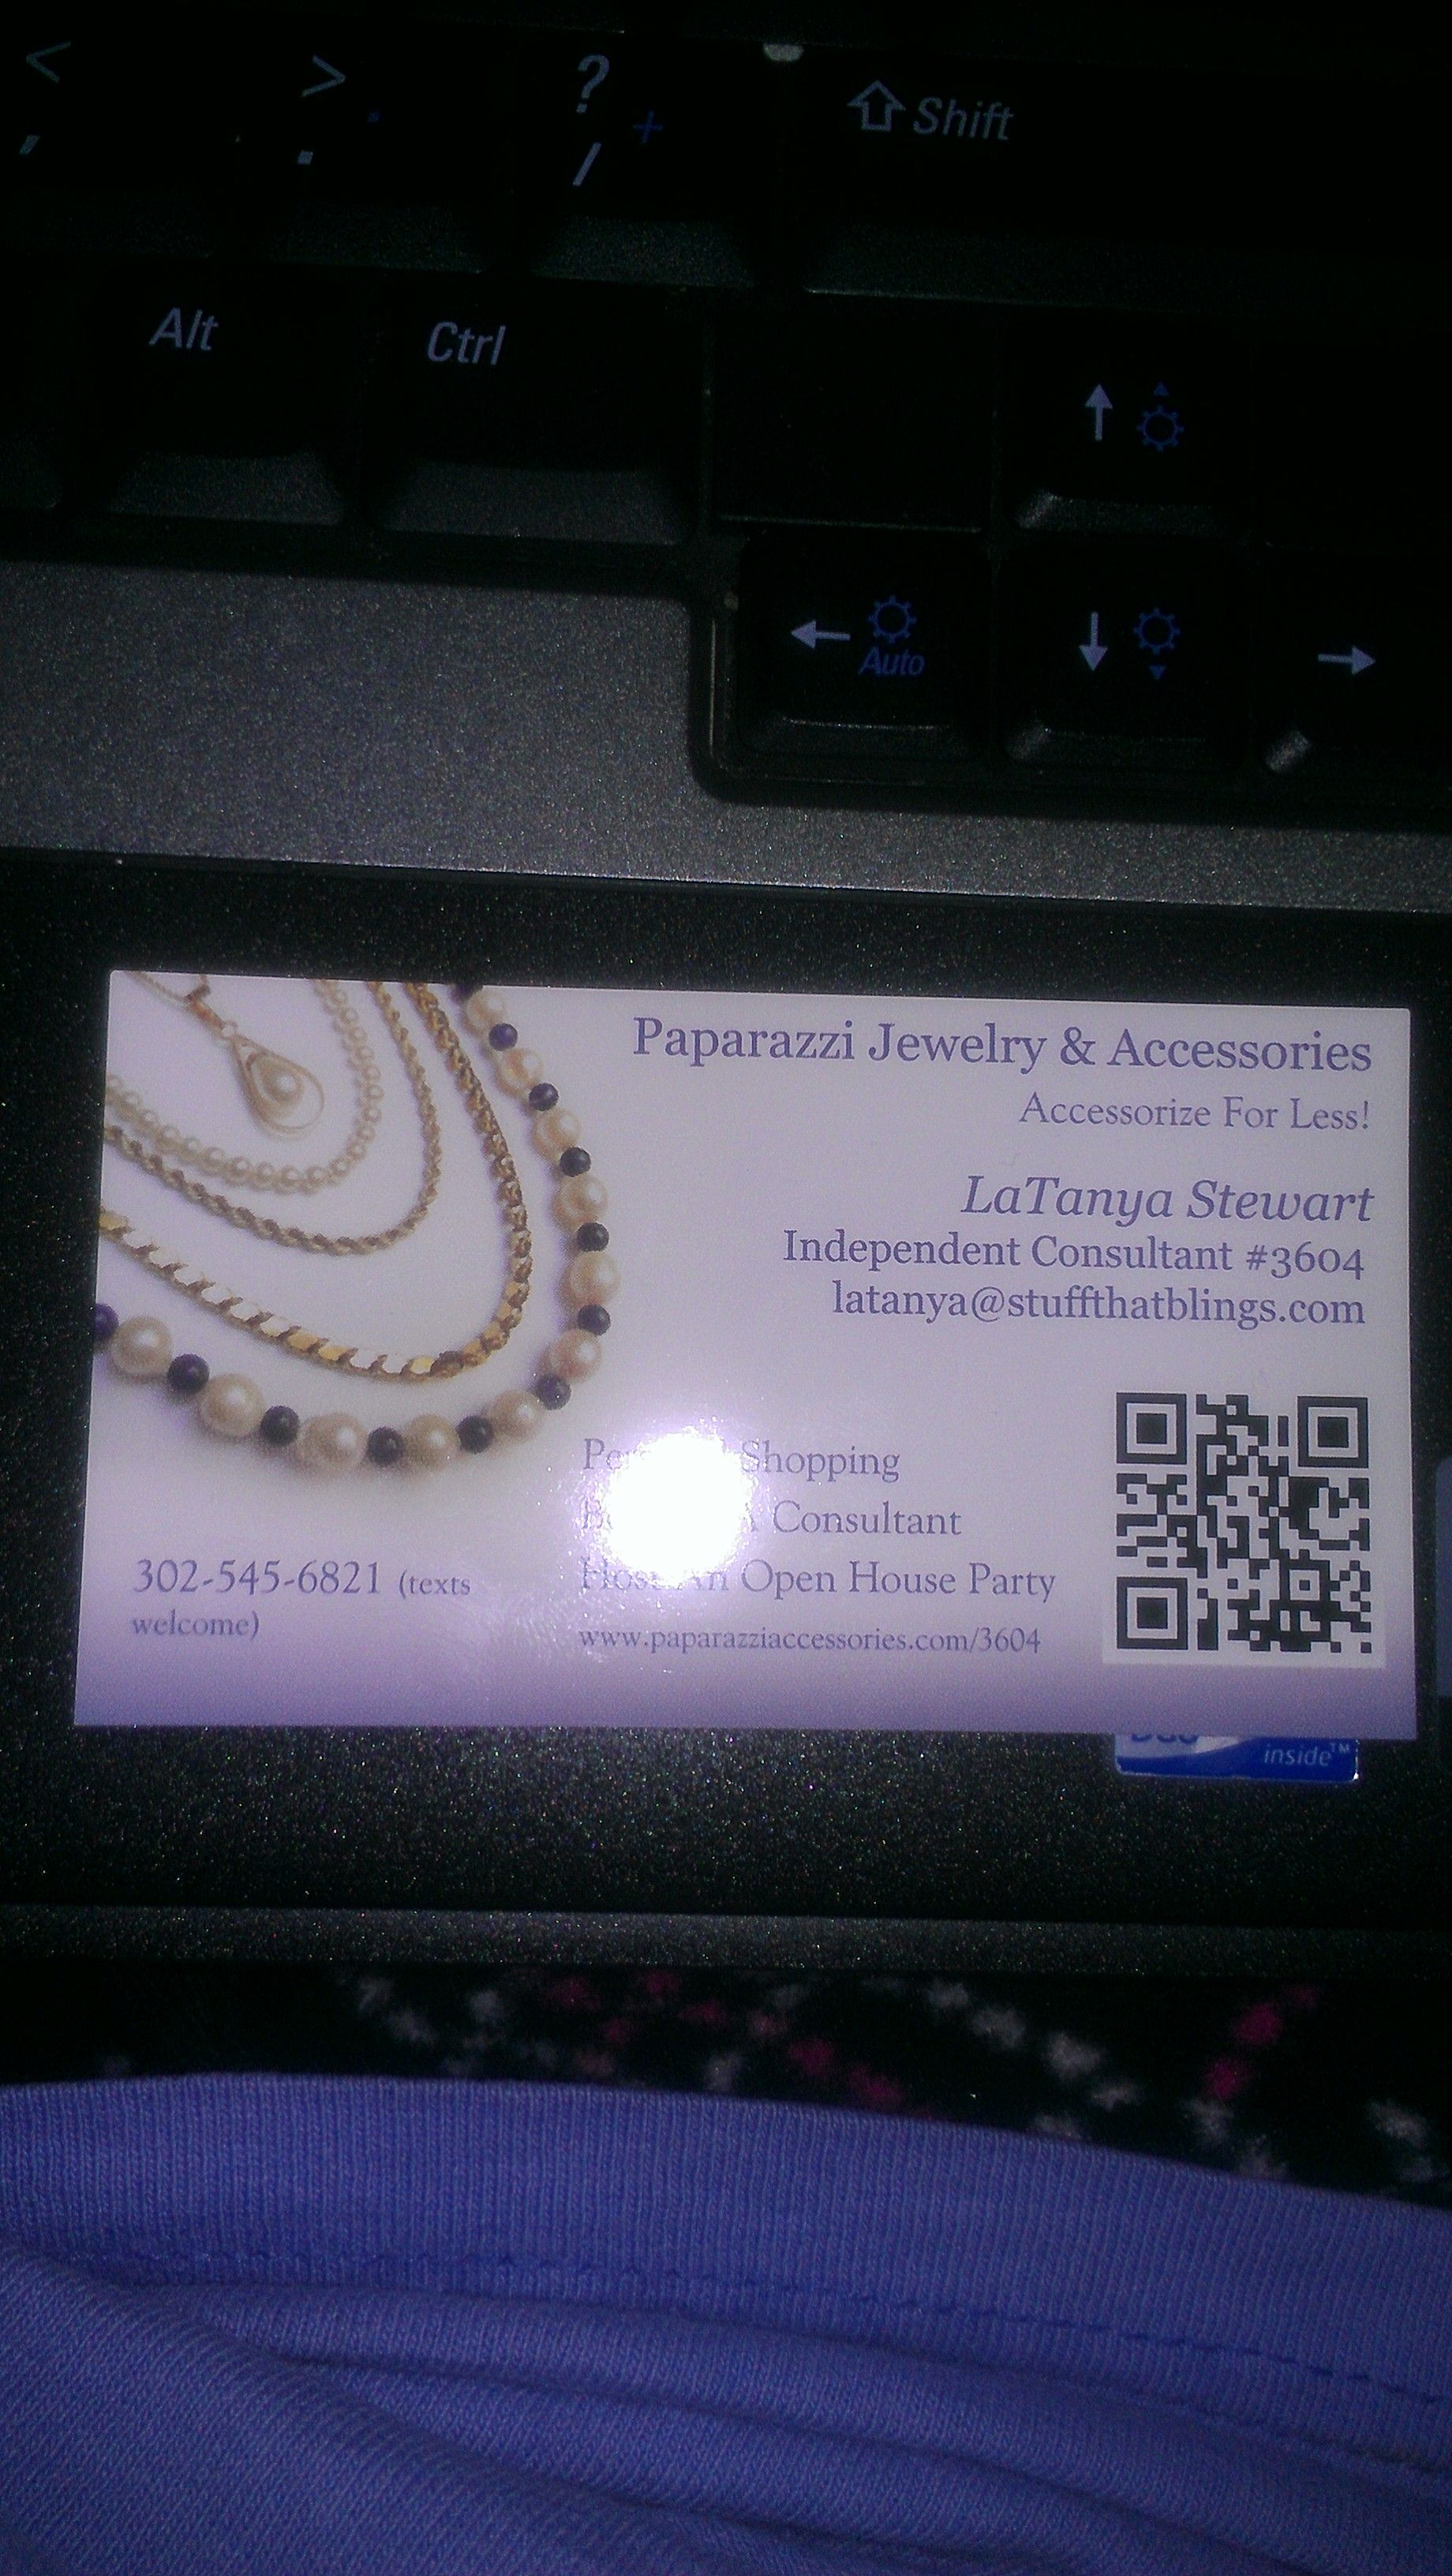 Business card. Scan the code to get to my Facebook page! I